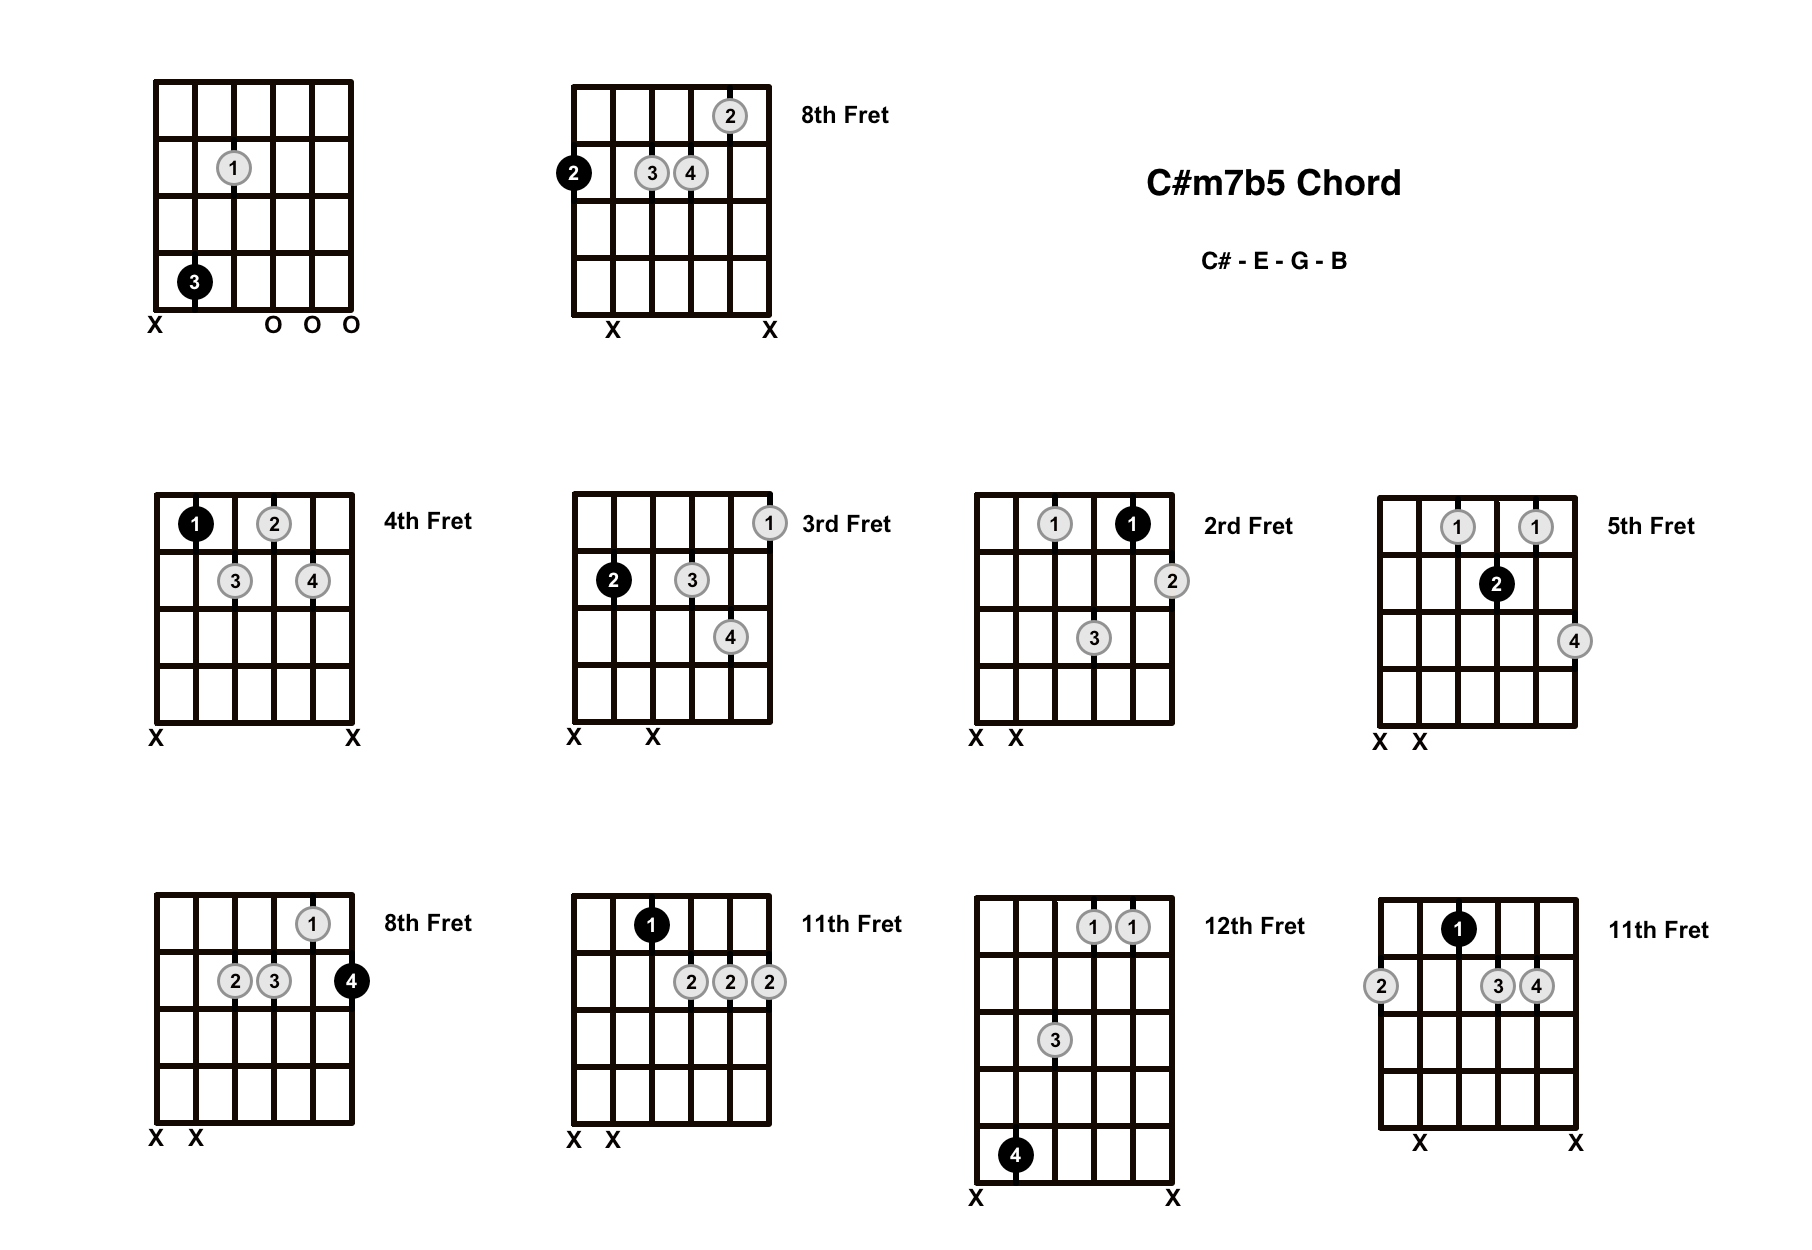 C#m7b5 Chord On The Guitar (C Sharp Minor 7 Flat 5, C Sharp Half Diminished) – Diagrams, Finger Positions and Theory